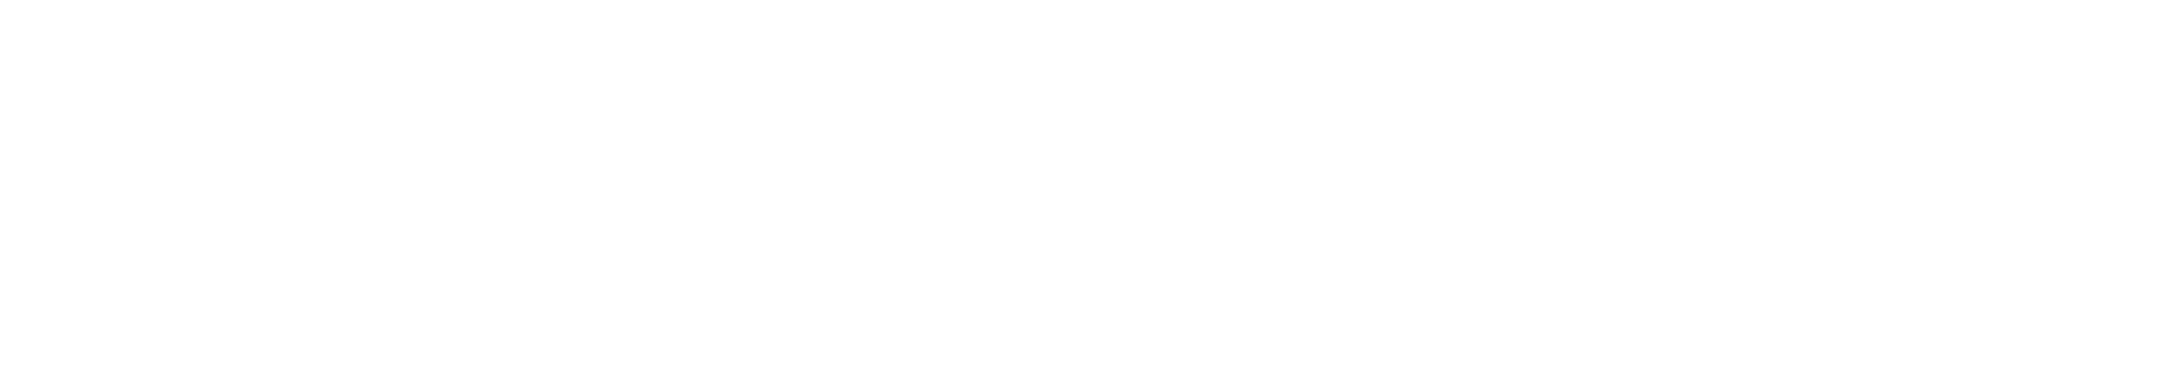 Workday Adaptive Planning Channel Partner logo